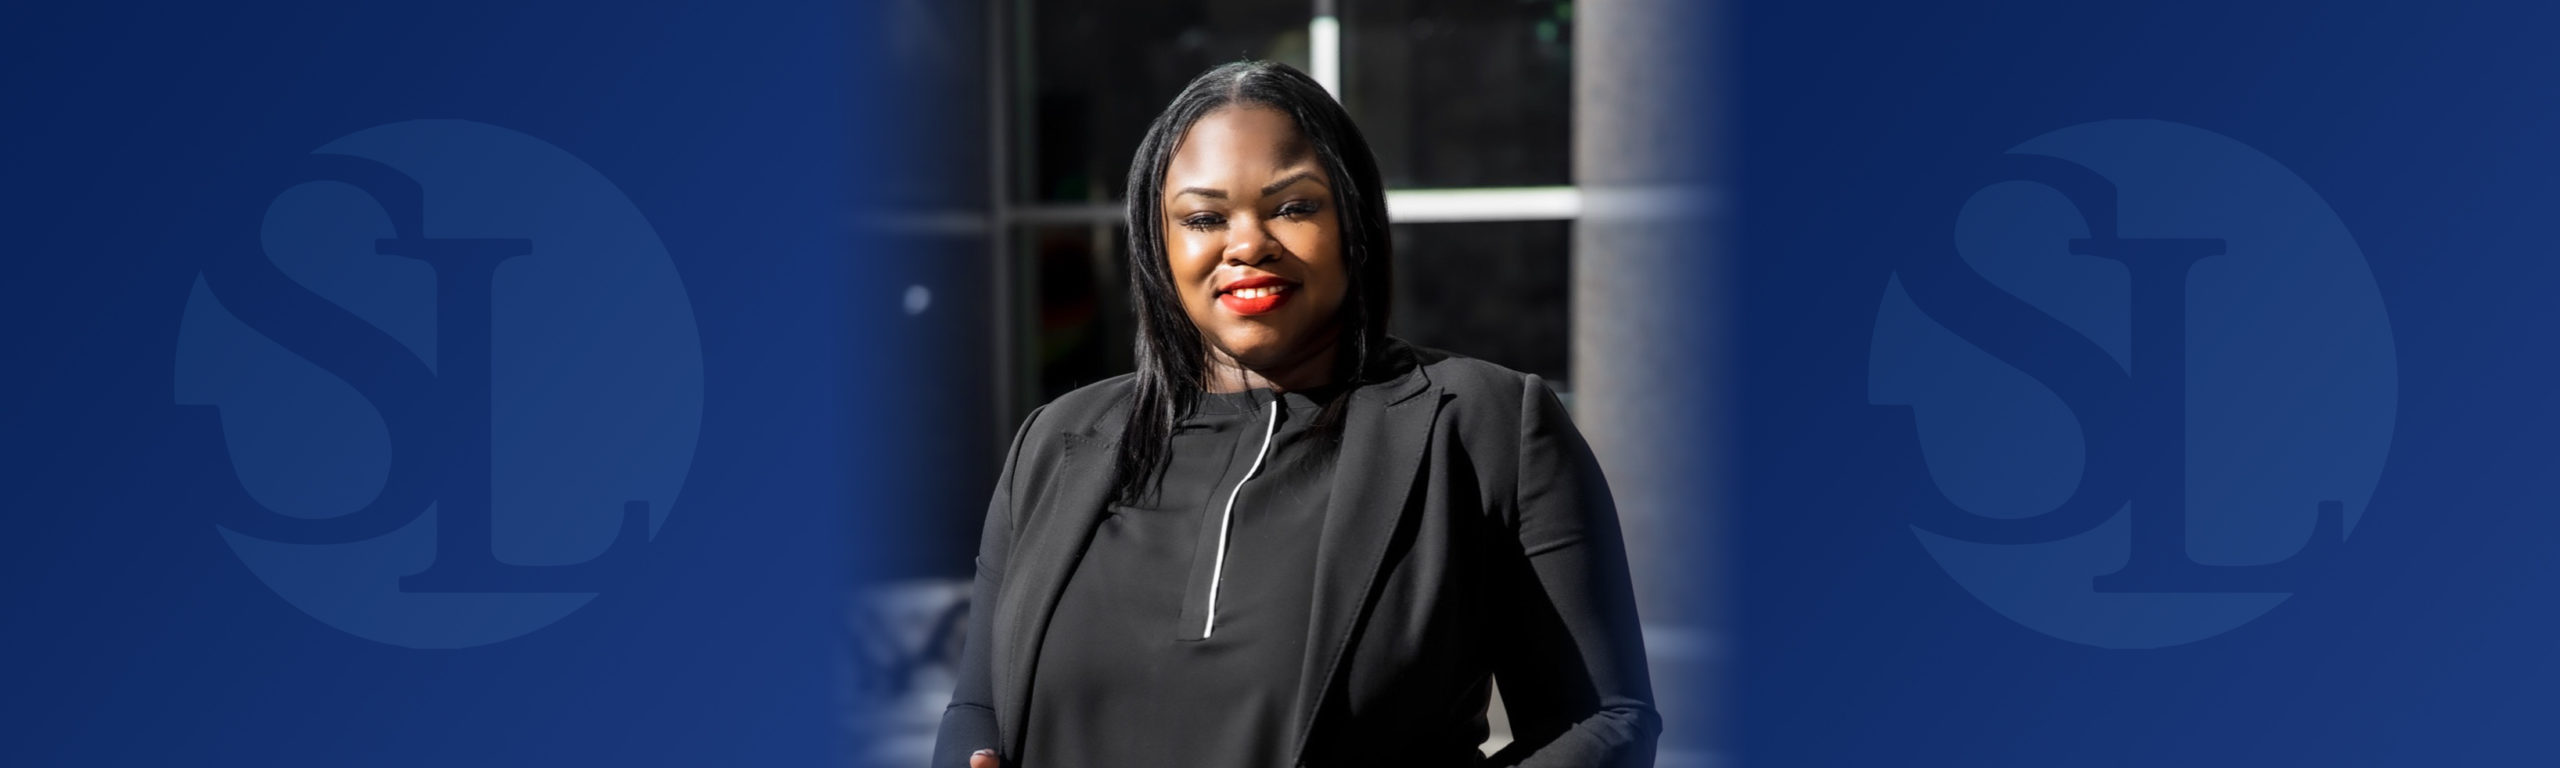 Sauls Law Group Welcomes Associate Attorney Joanna G. Boyd